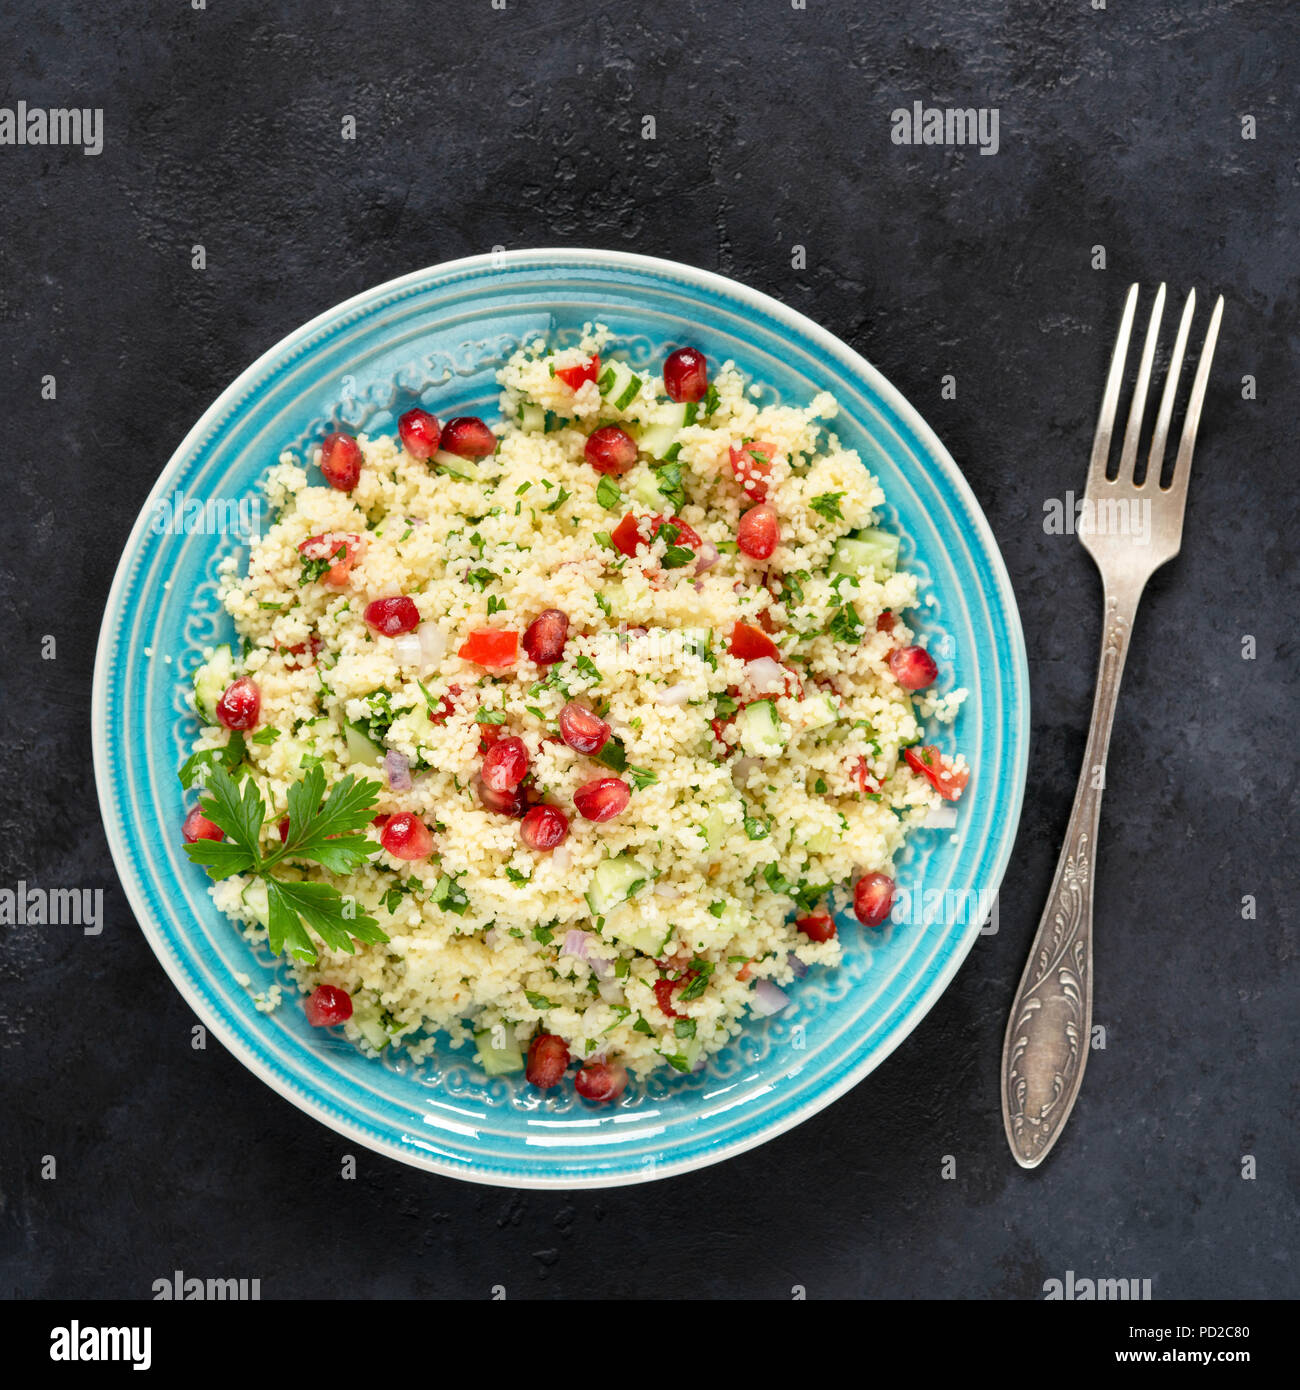 Tabbouleh salad with couscous and pomegranate seeds on a blue plate on black stone. Top view, square crop - Stock Image